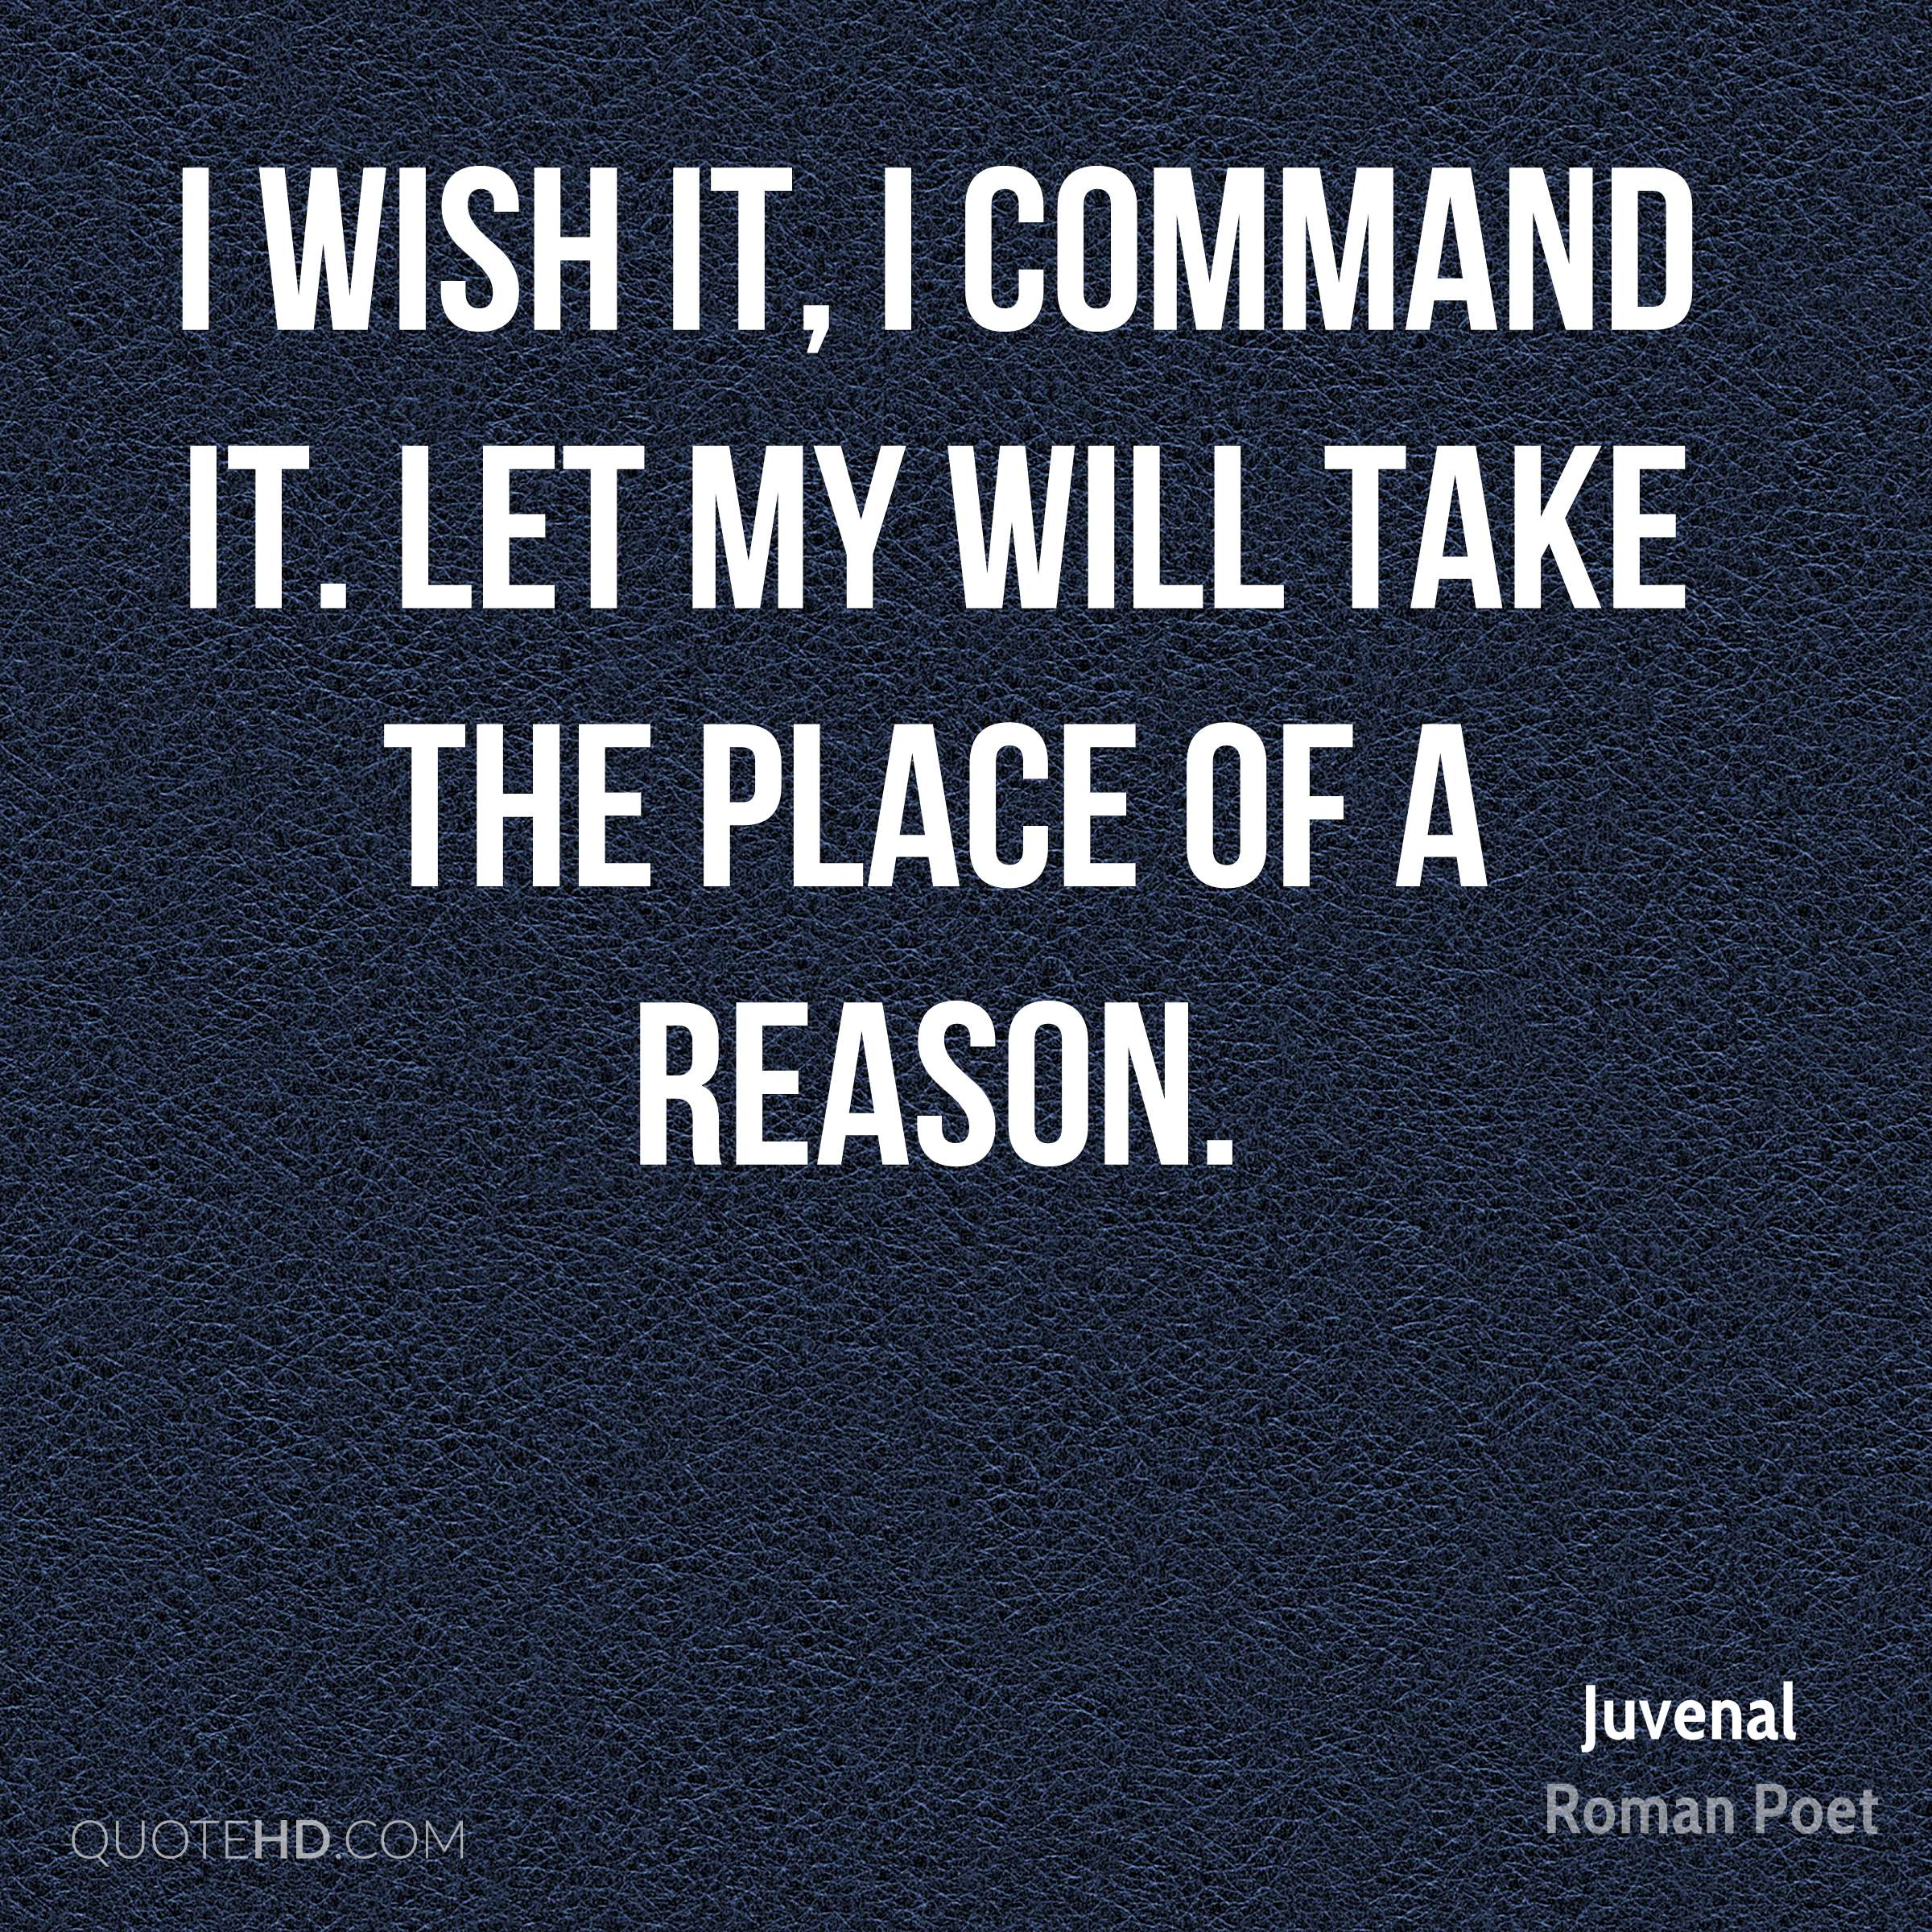 I wish it, I command it. Let my will take the place of a reason.